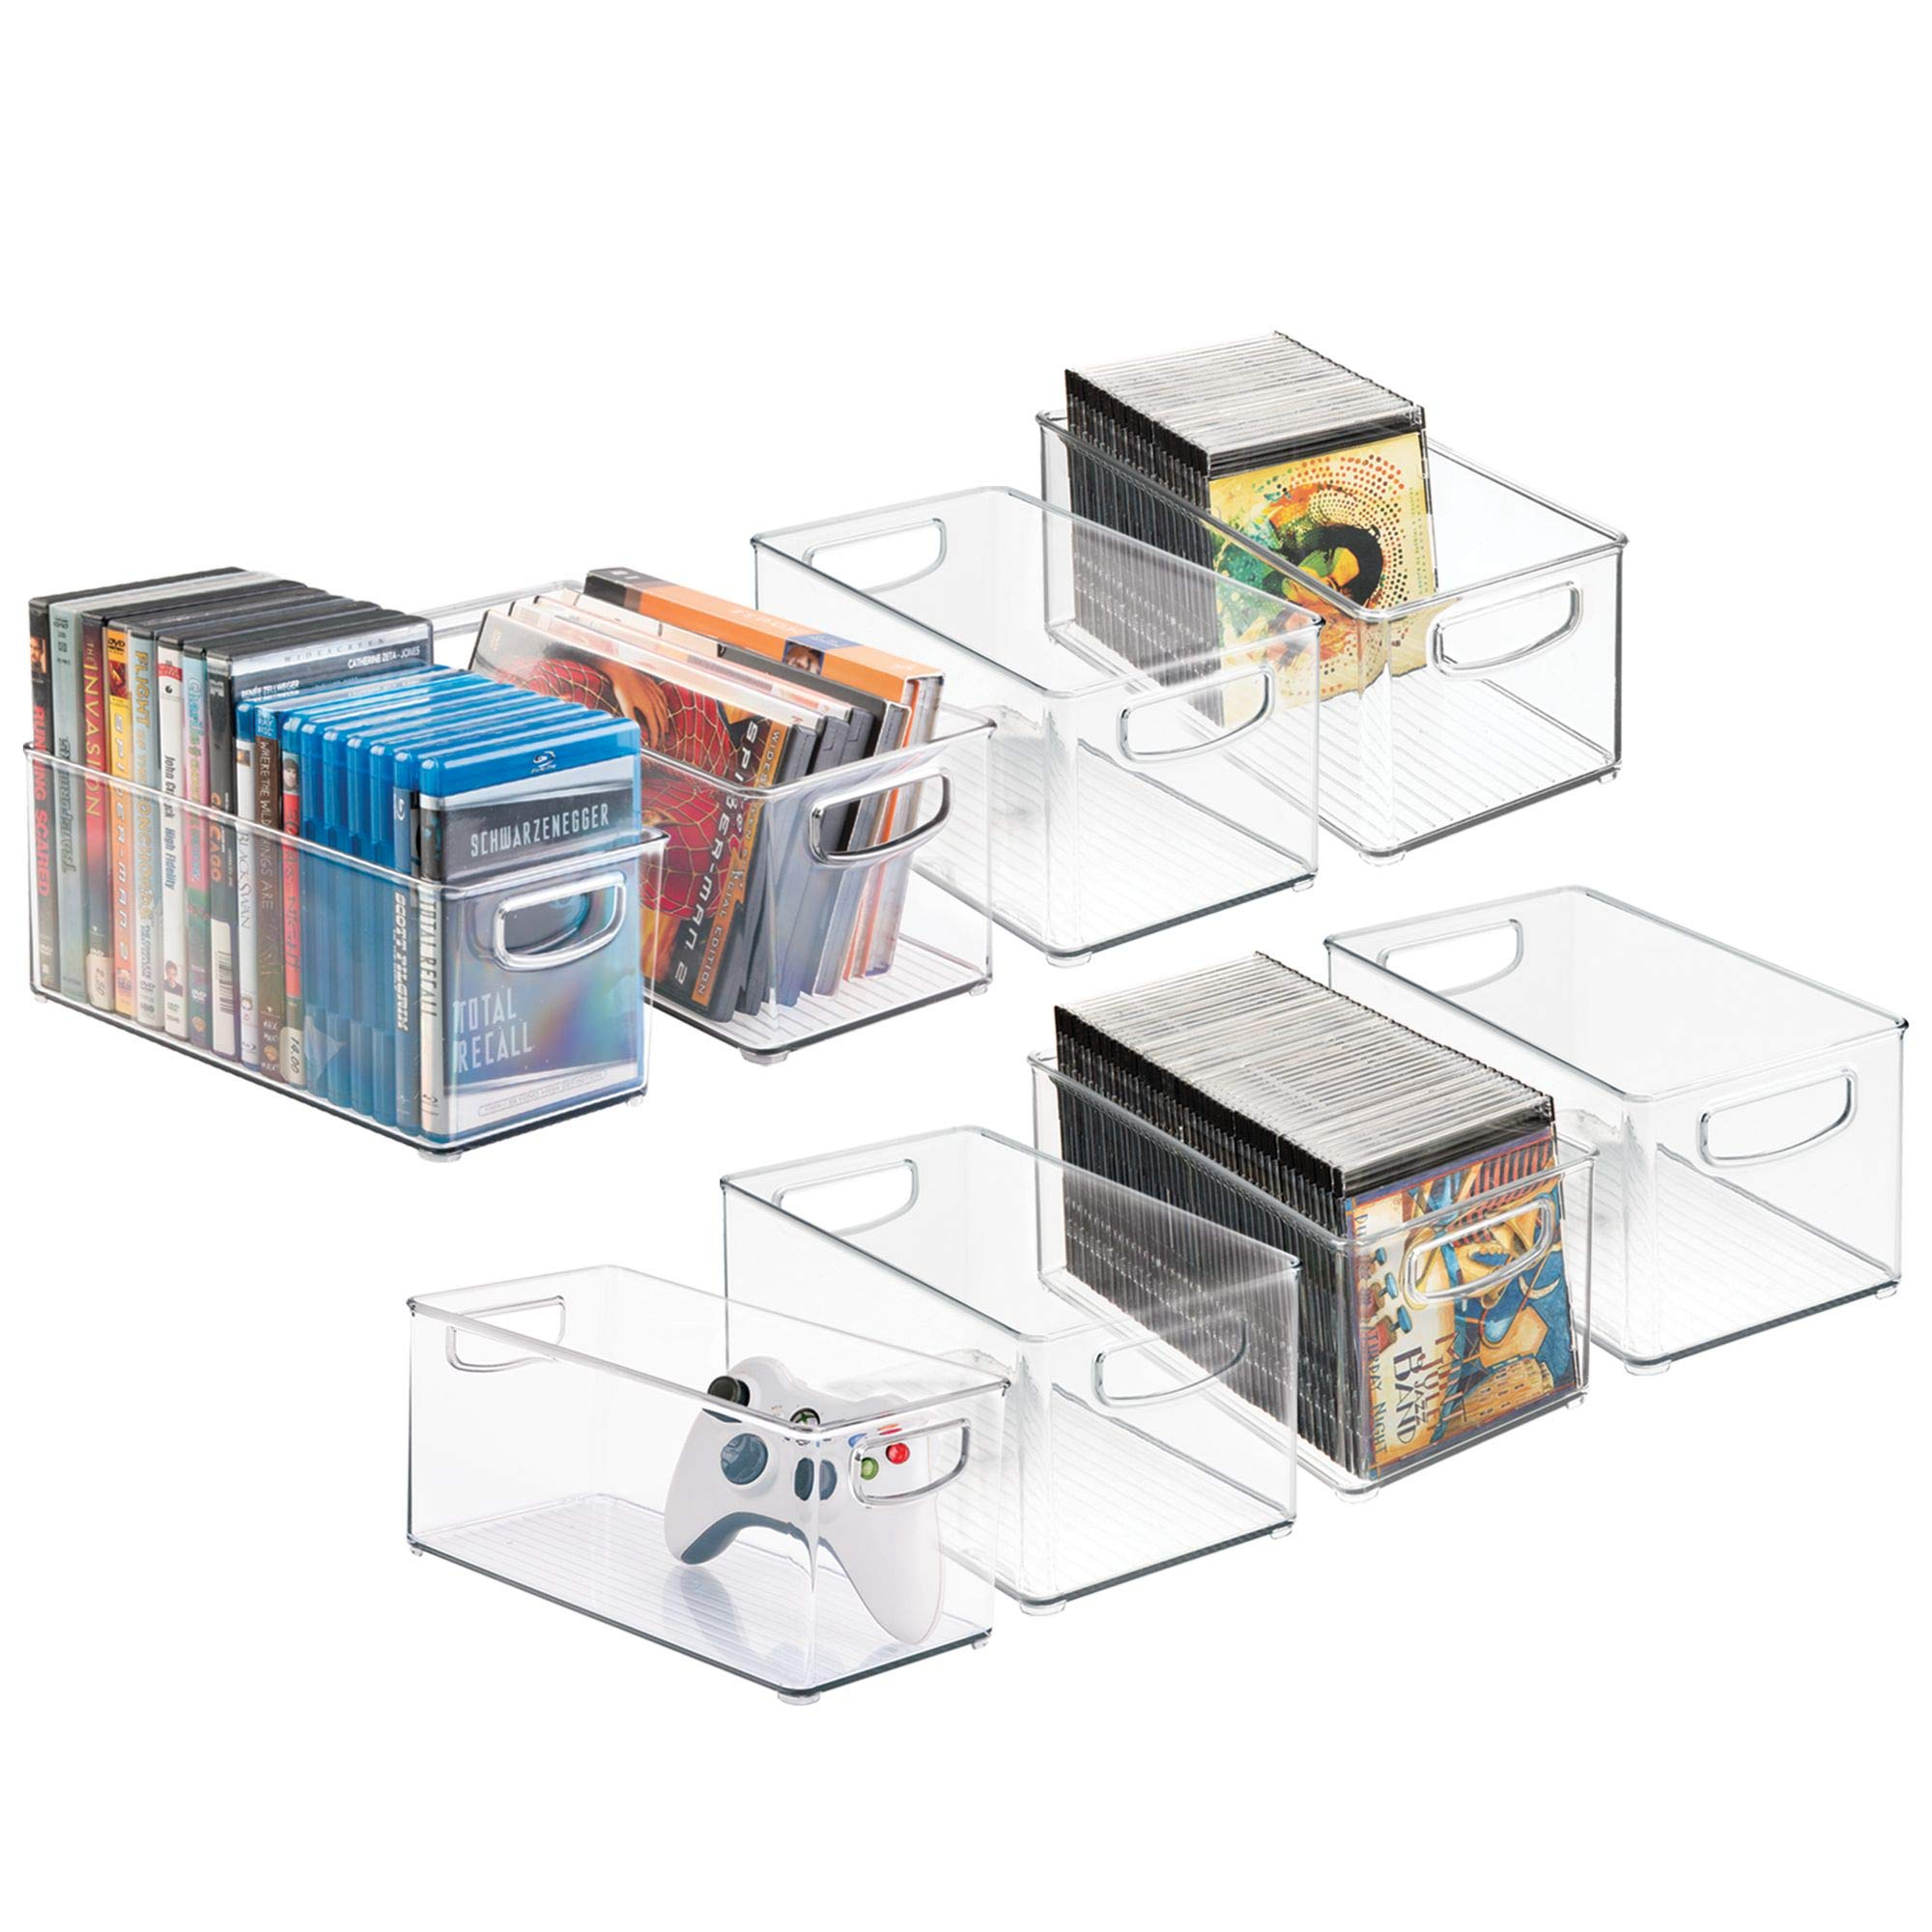 mDesign Plastic Stackable Household Storage Organizer Container Bin with Handles - for Media Consoles, Closets, Cabinets - Holds DVD's, Video Games, Gaming Accessories - BPA Free - 8 Pack, Clear